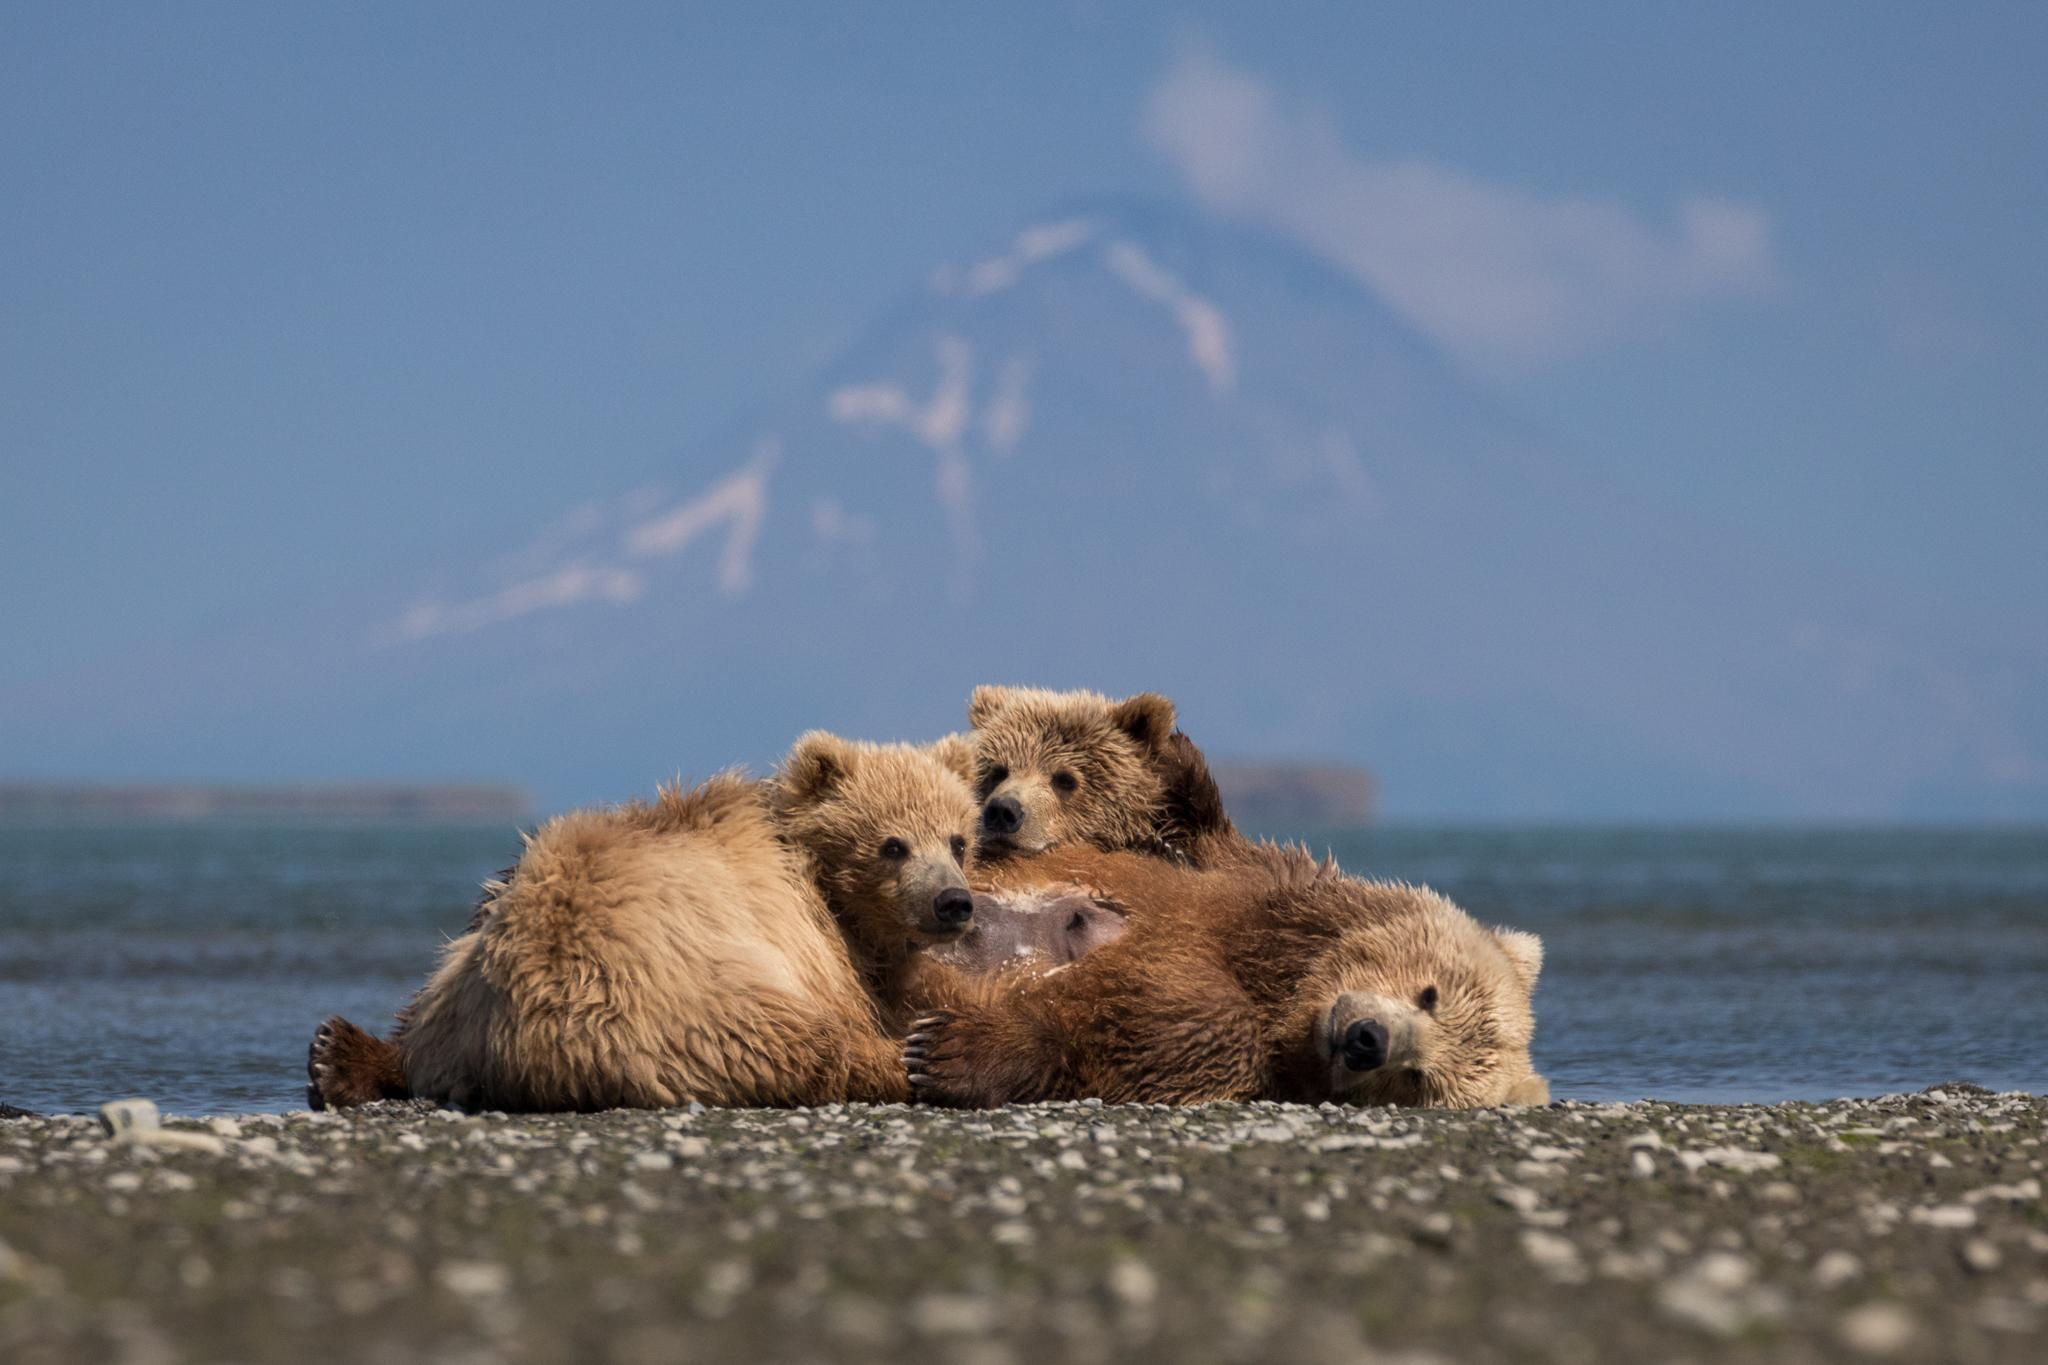 A female known as T Bear nurses her year-old cubs in the tidal flats of McNeil River State Game Sanctuary and Refuge. Augustine Volcano, which last erupted in 2006, is in the background. Bear advocates worry a proposed mine corridor to the north could negatively affect the animals.